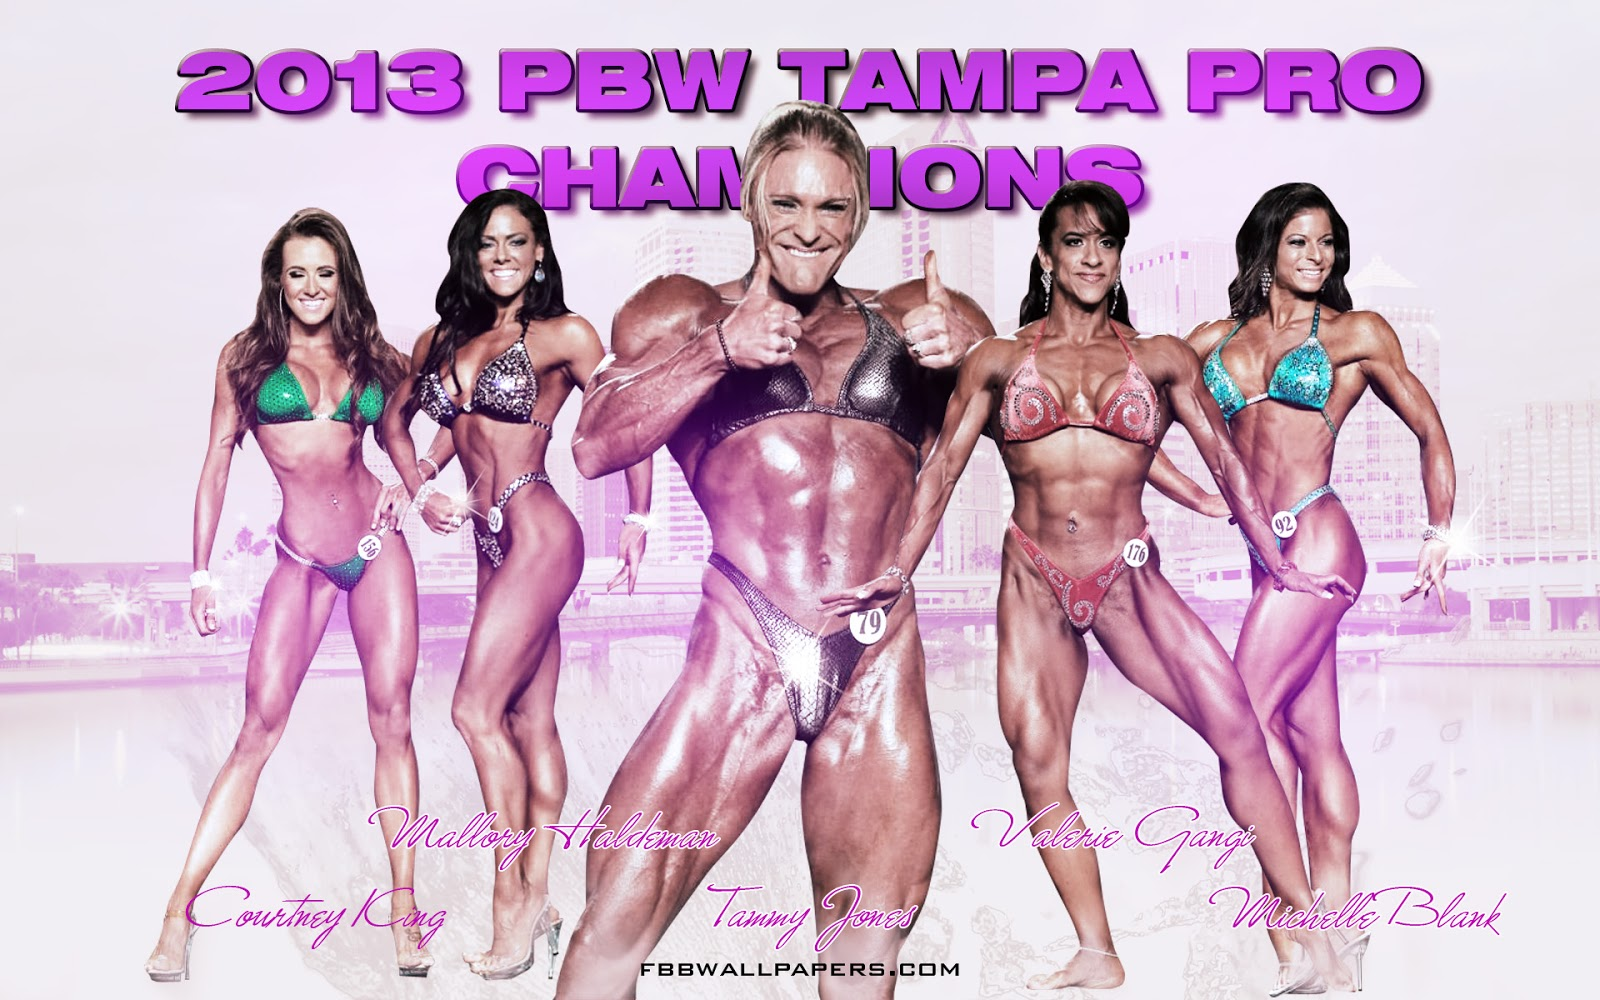 2013 PBW Tampa Pro Women Champions 1920 by 1200 Wallpaper